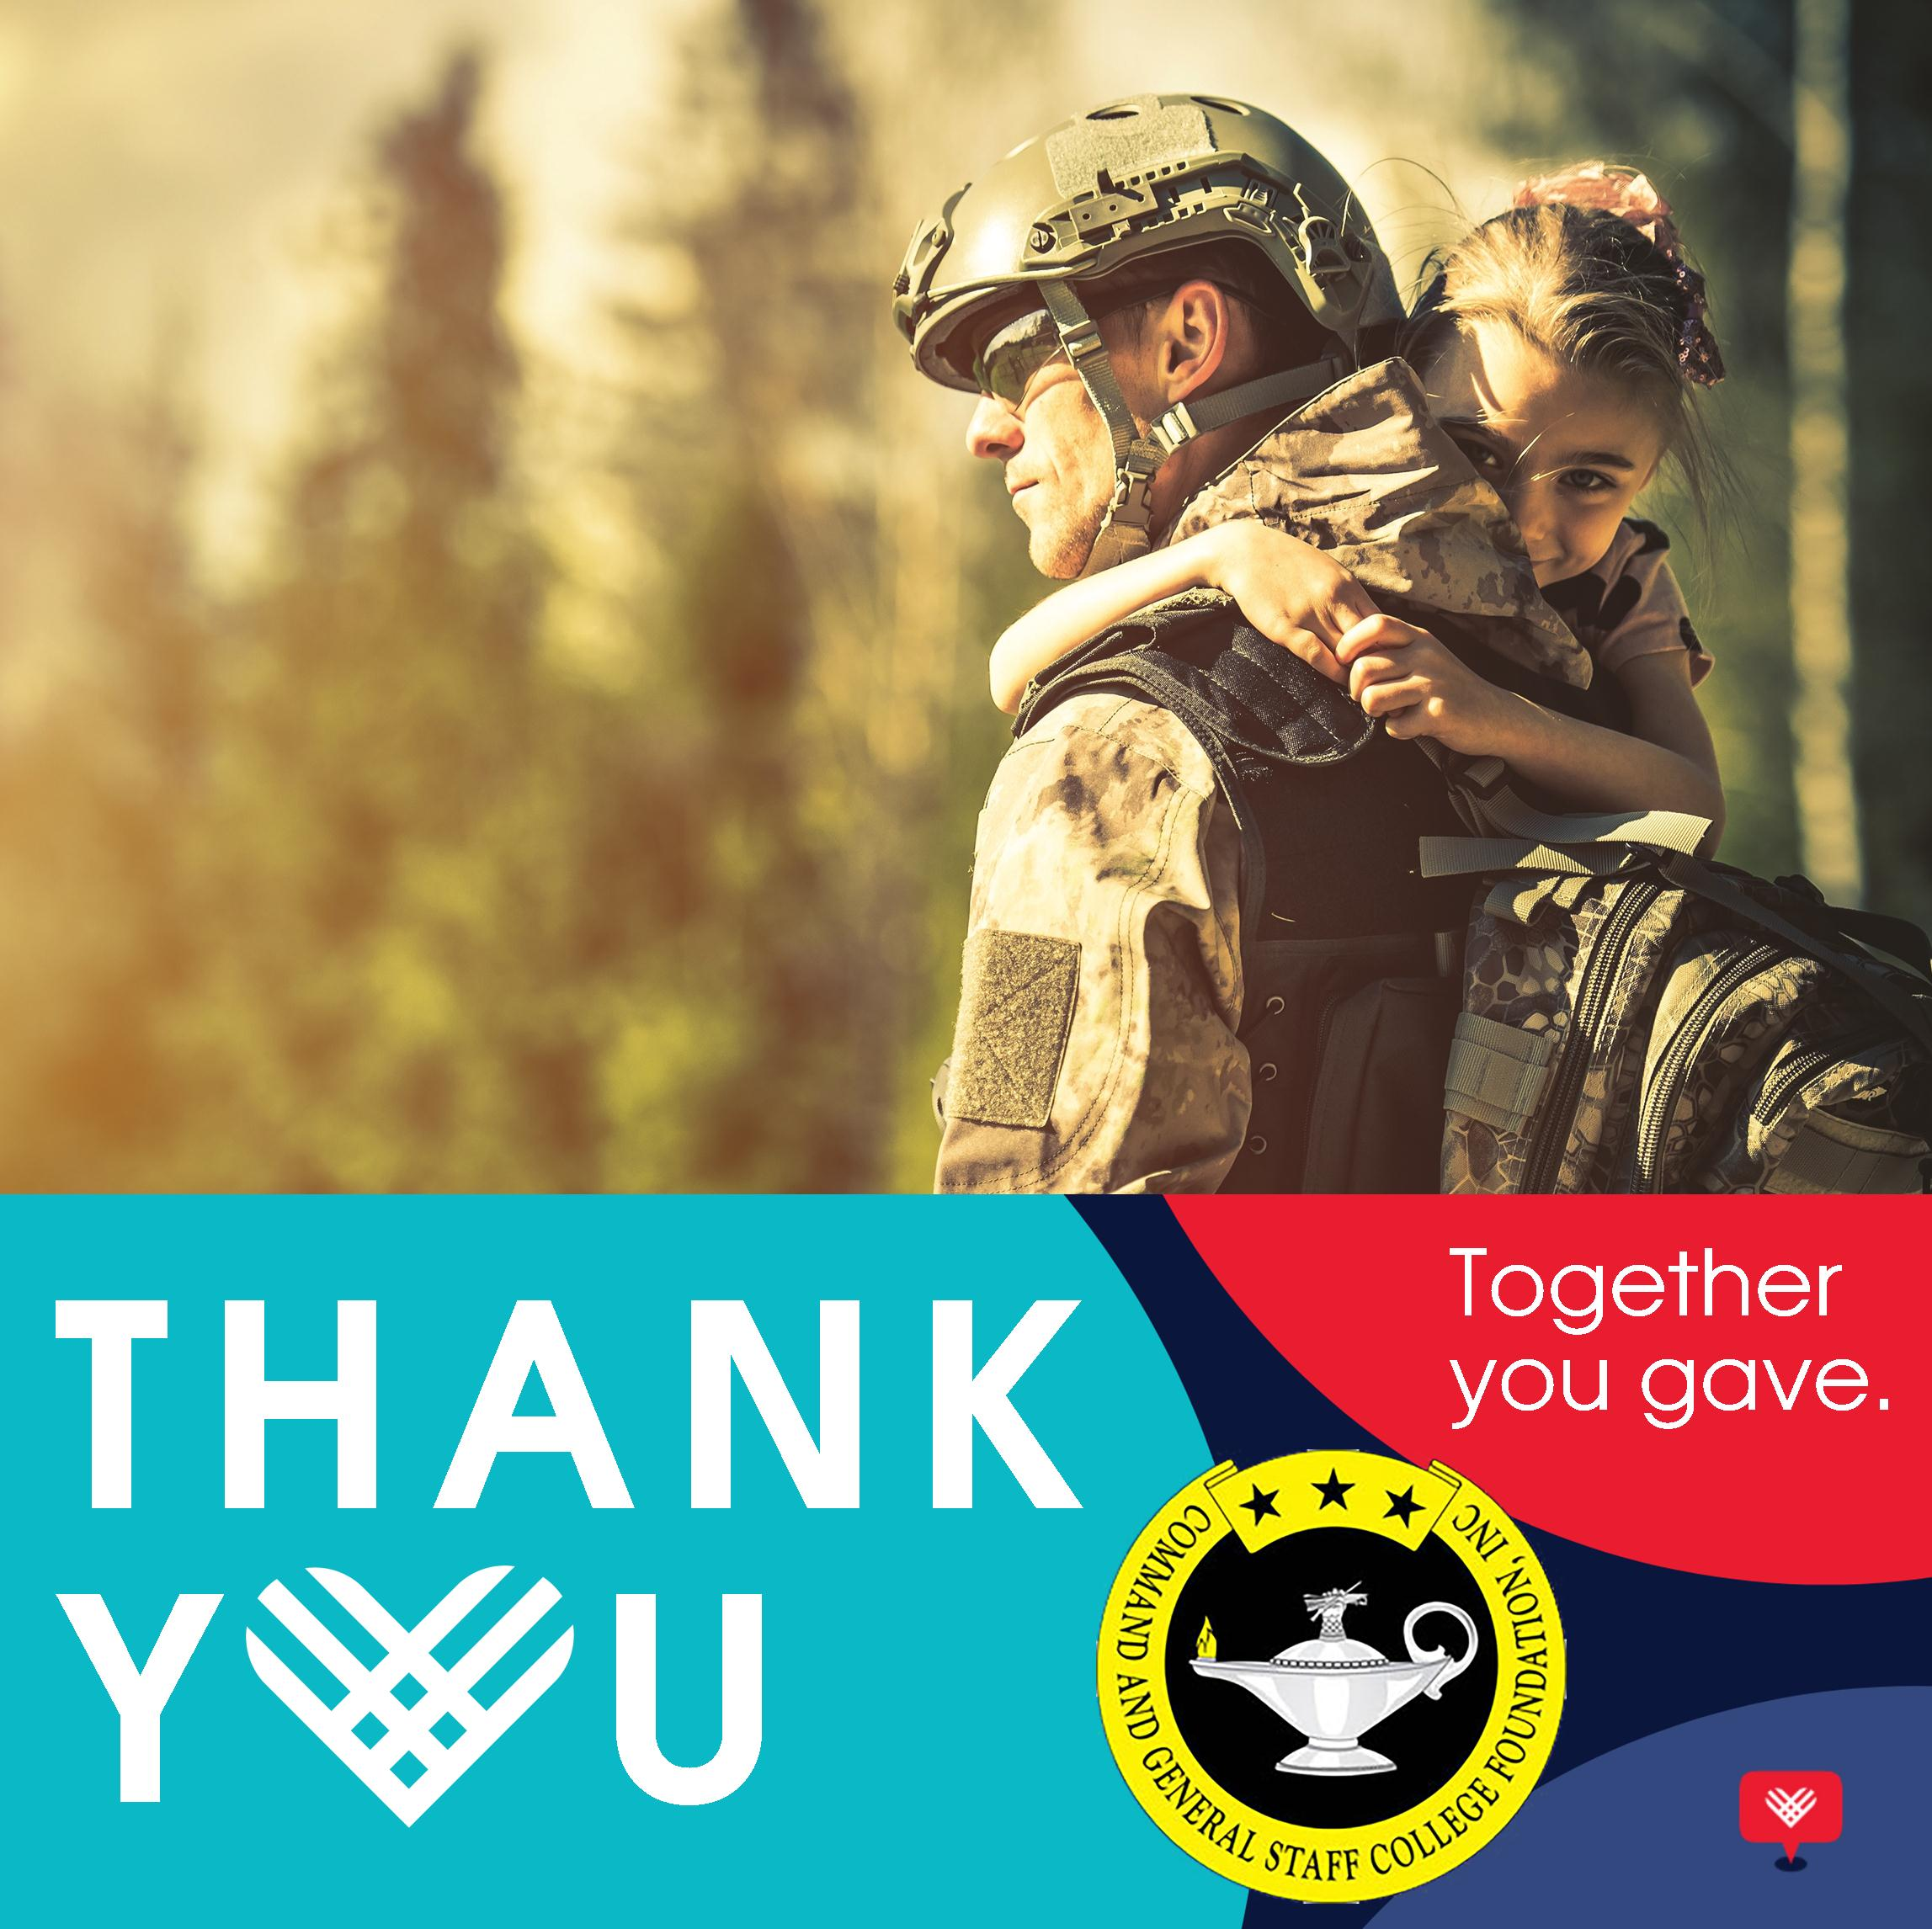 Follow-up on Giving Tuesday 2020 – THANK YOU ALL!